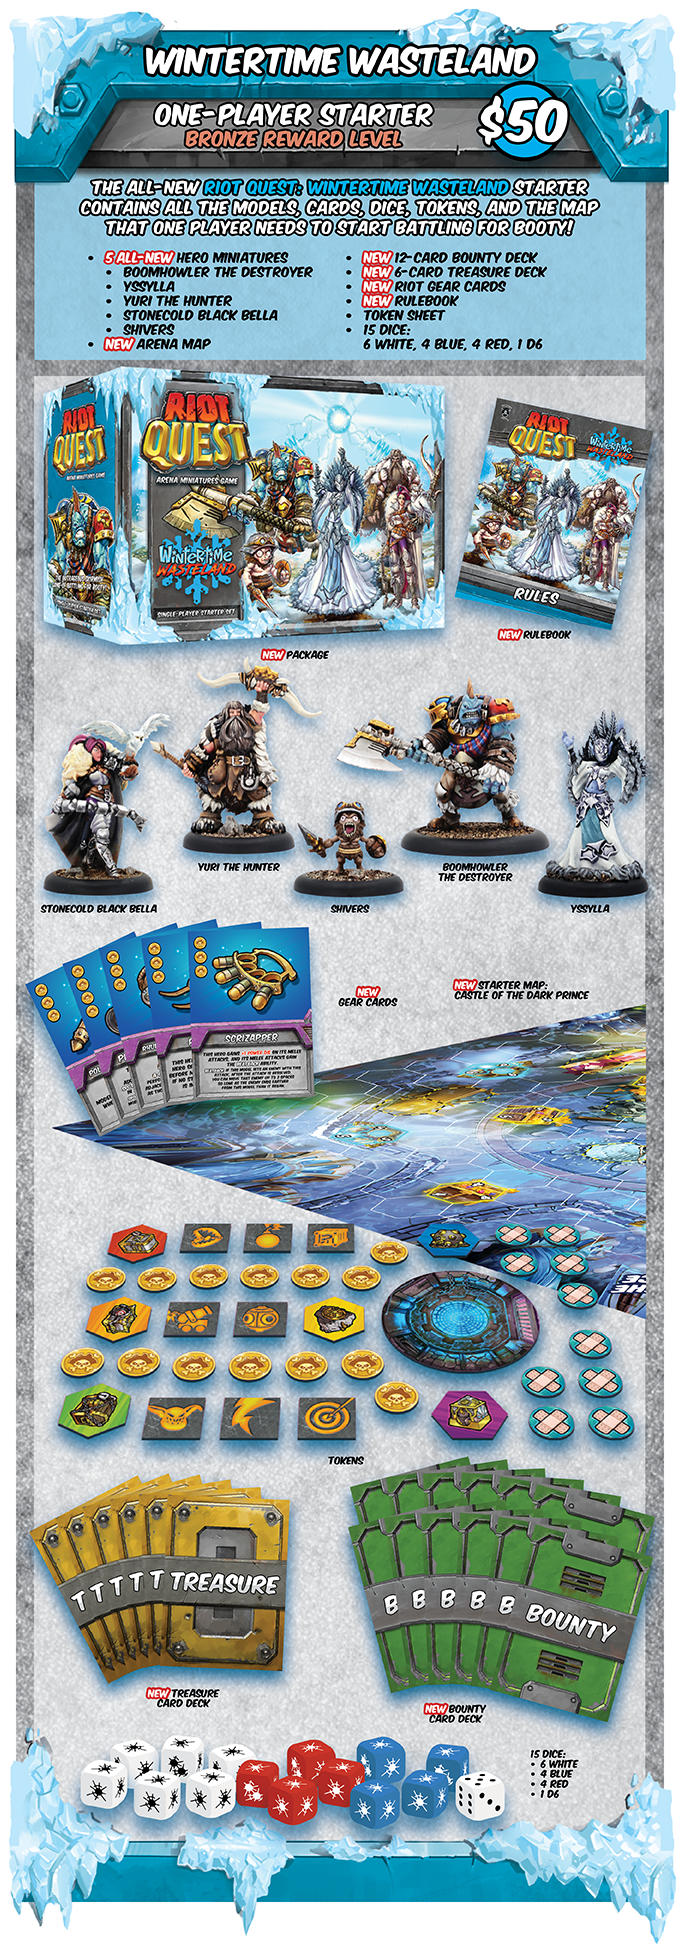 Riot Quest Winter Wasteland Basic Pledge - Privateer Press.png